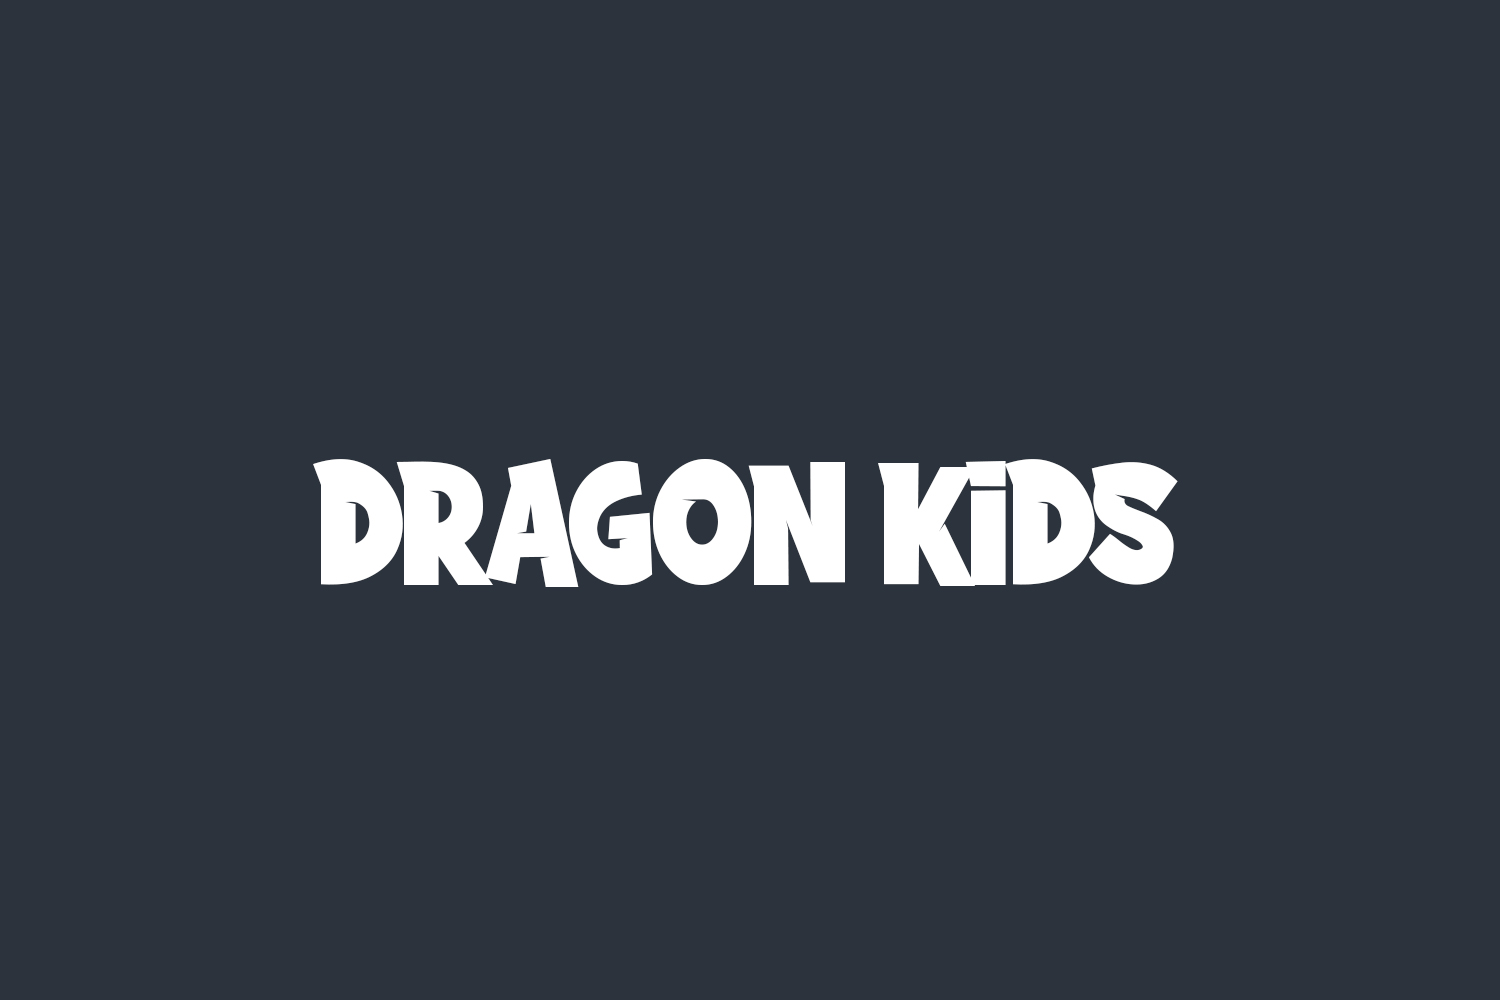 Dragon Kids Free Font